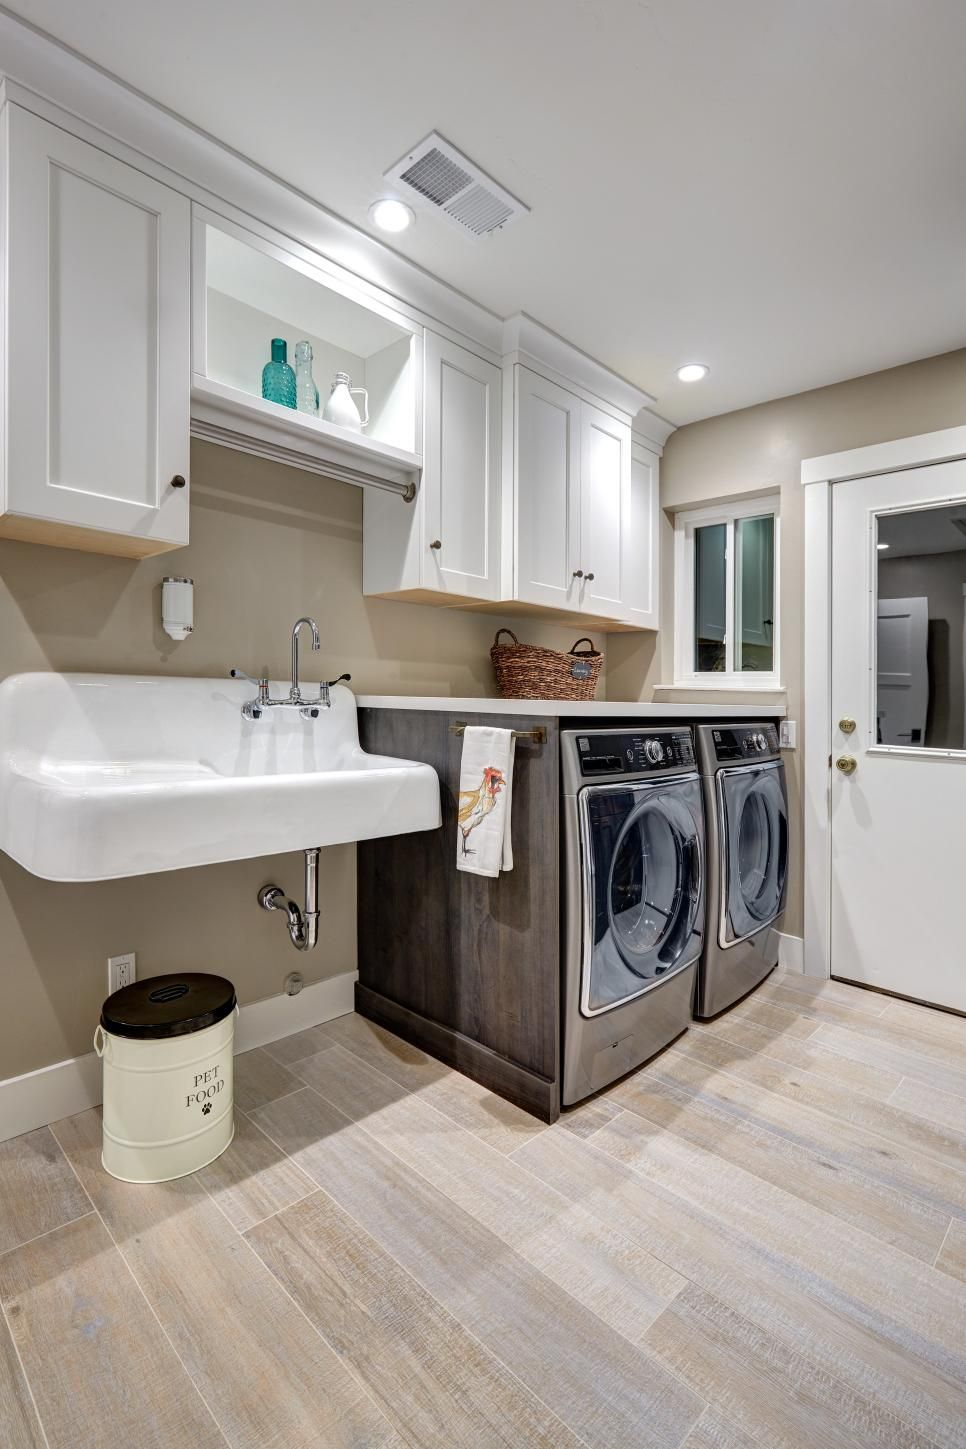 The white and sink in this laundry room give the